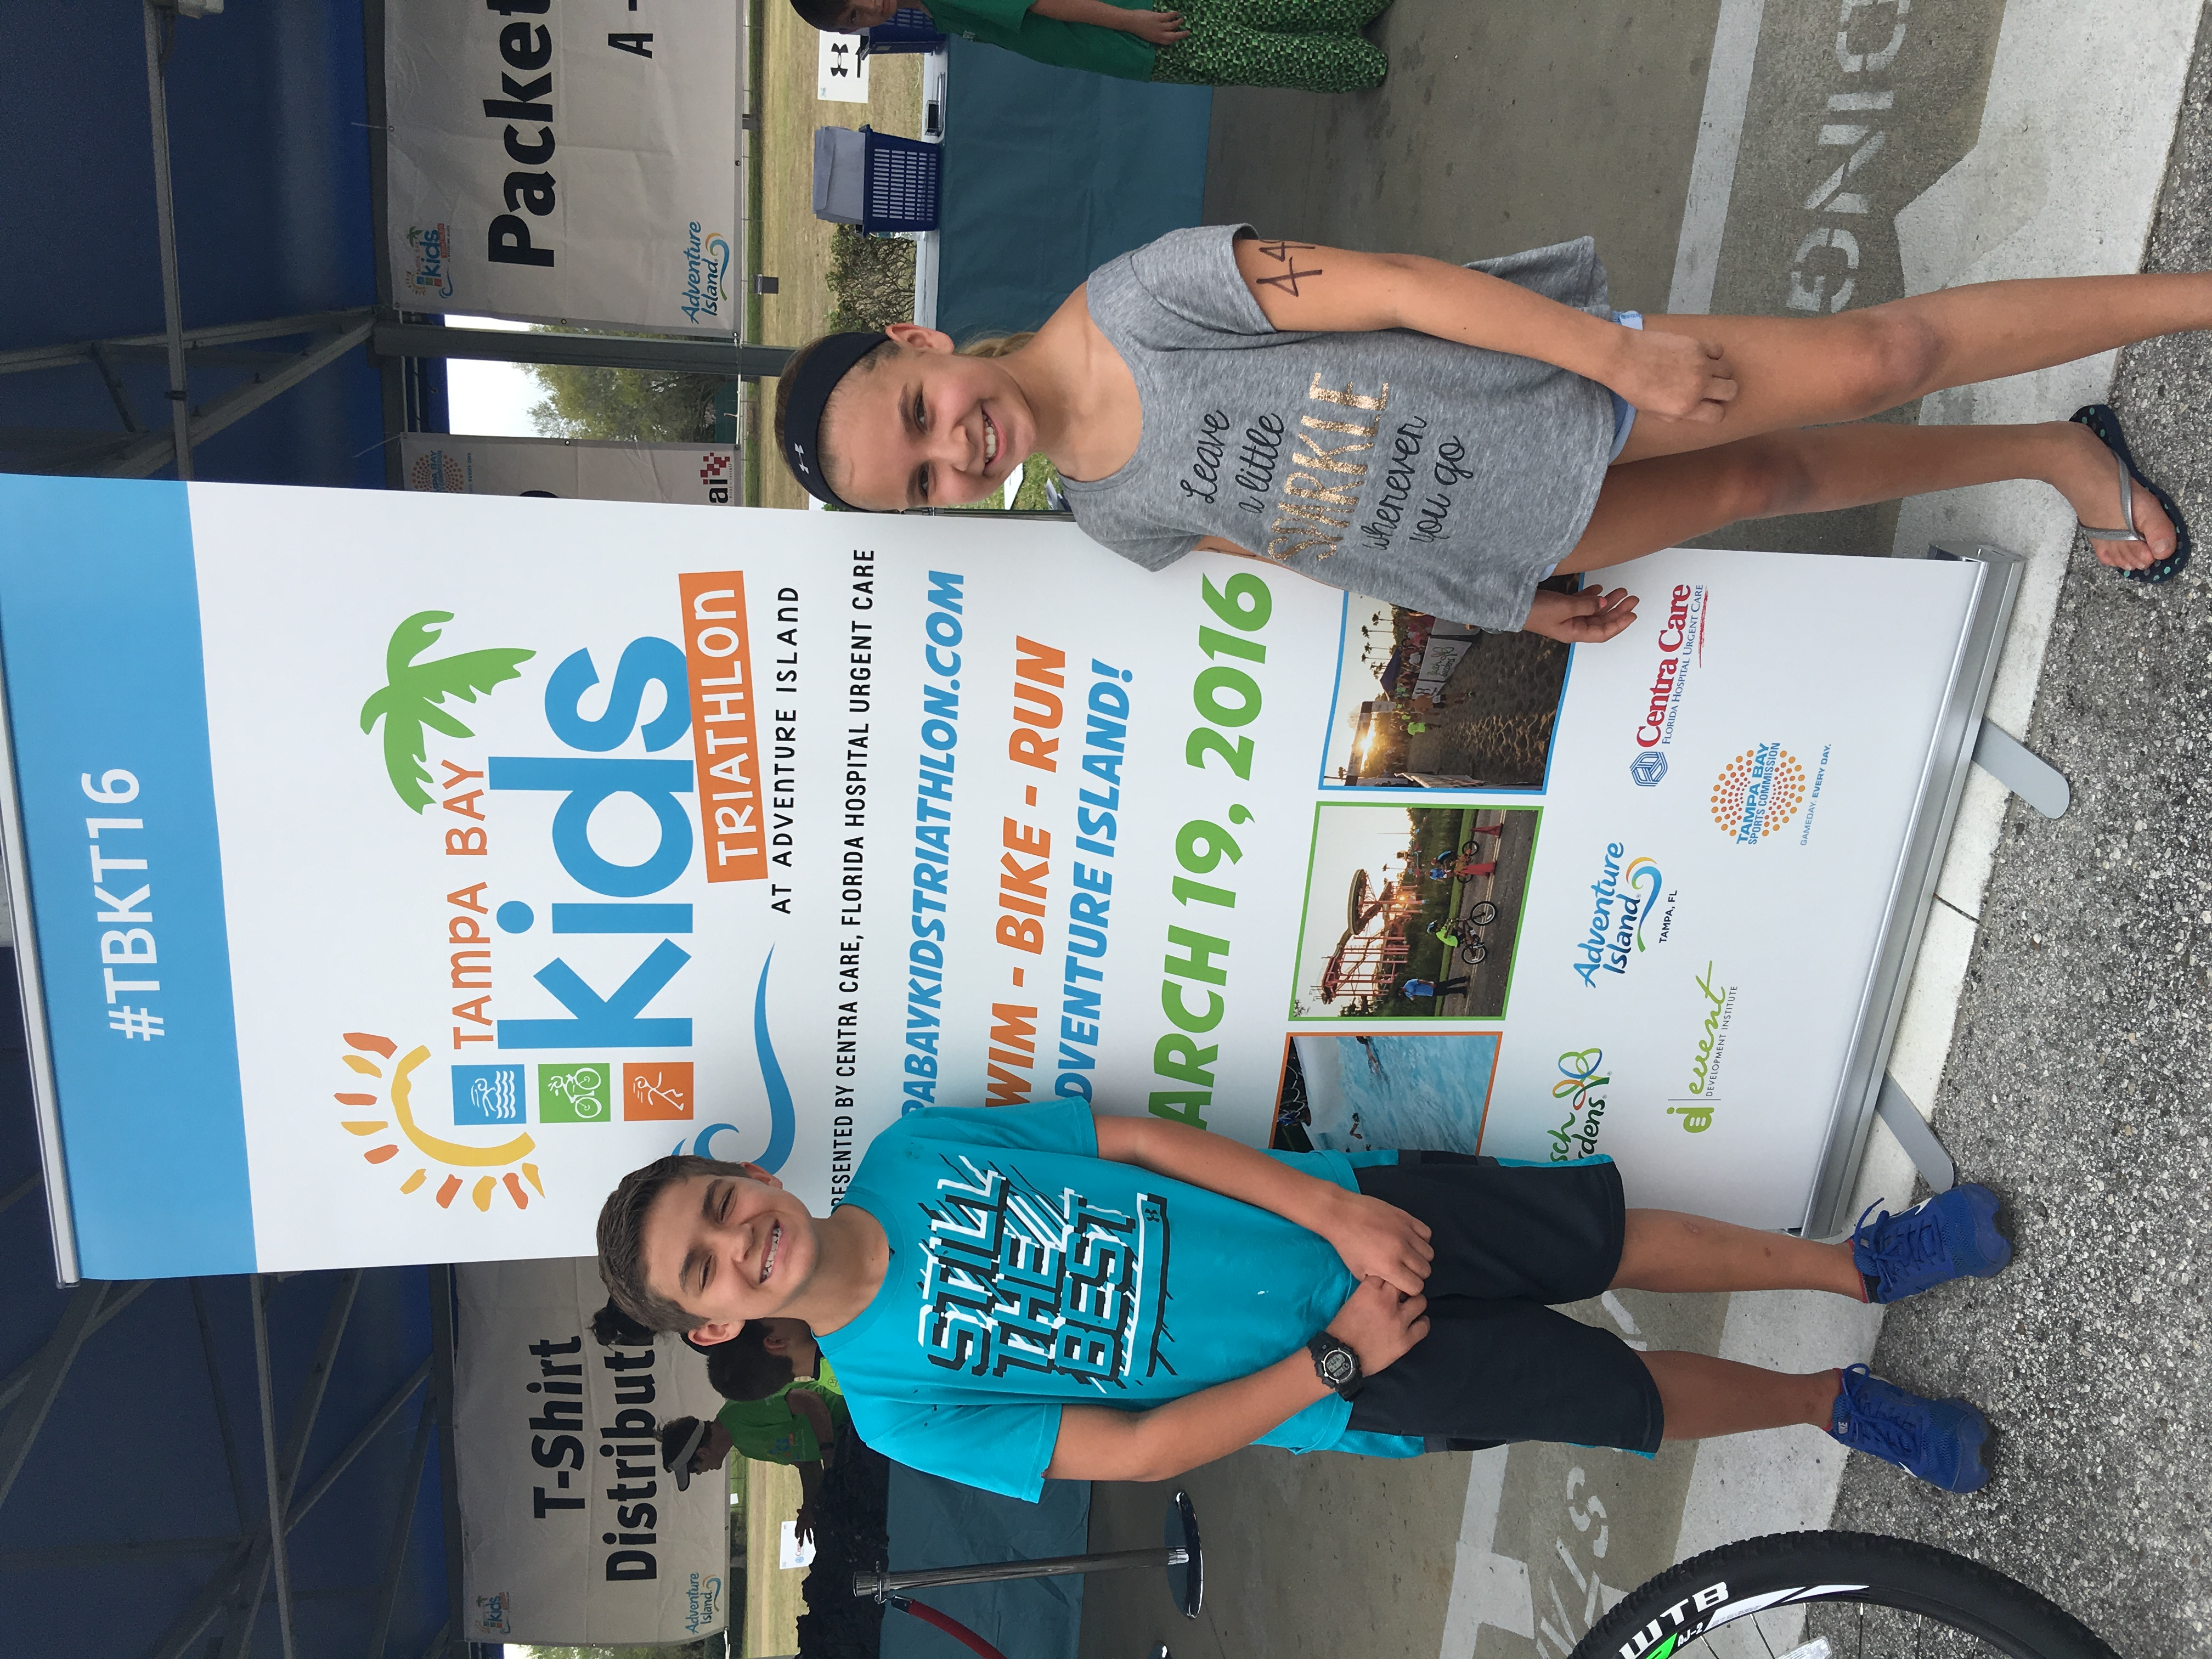 Tampa Bay Kids Triathlon Returns to Tampa on April 22